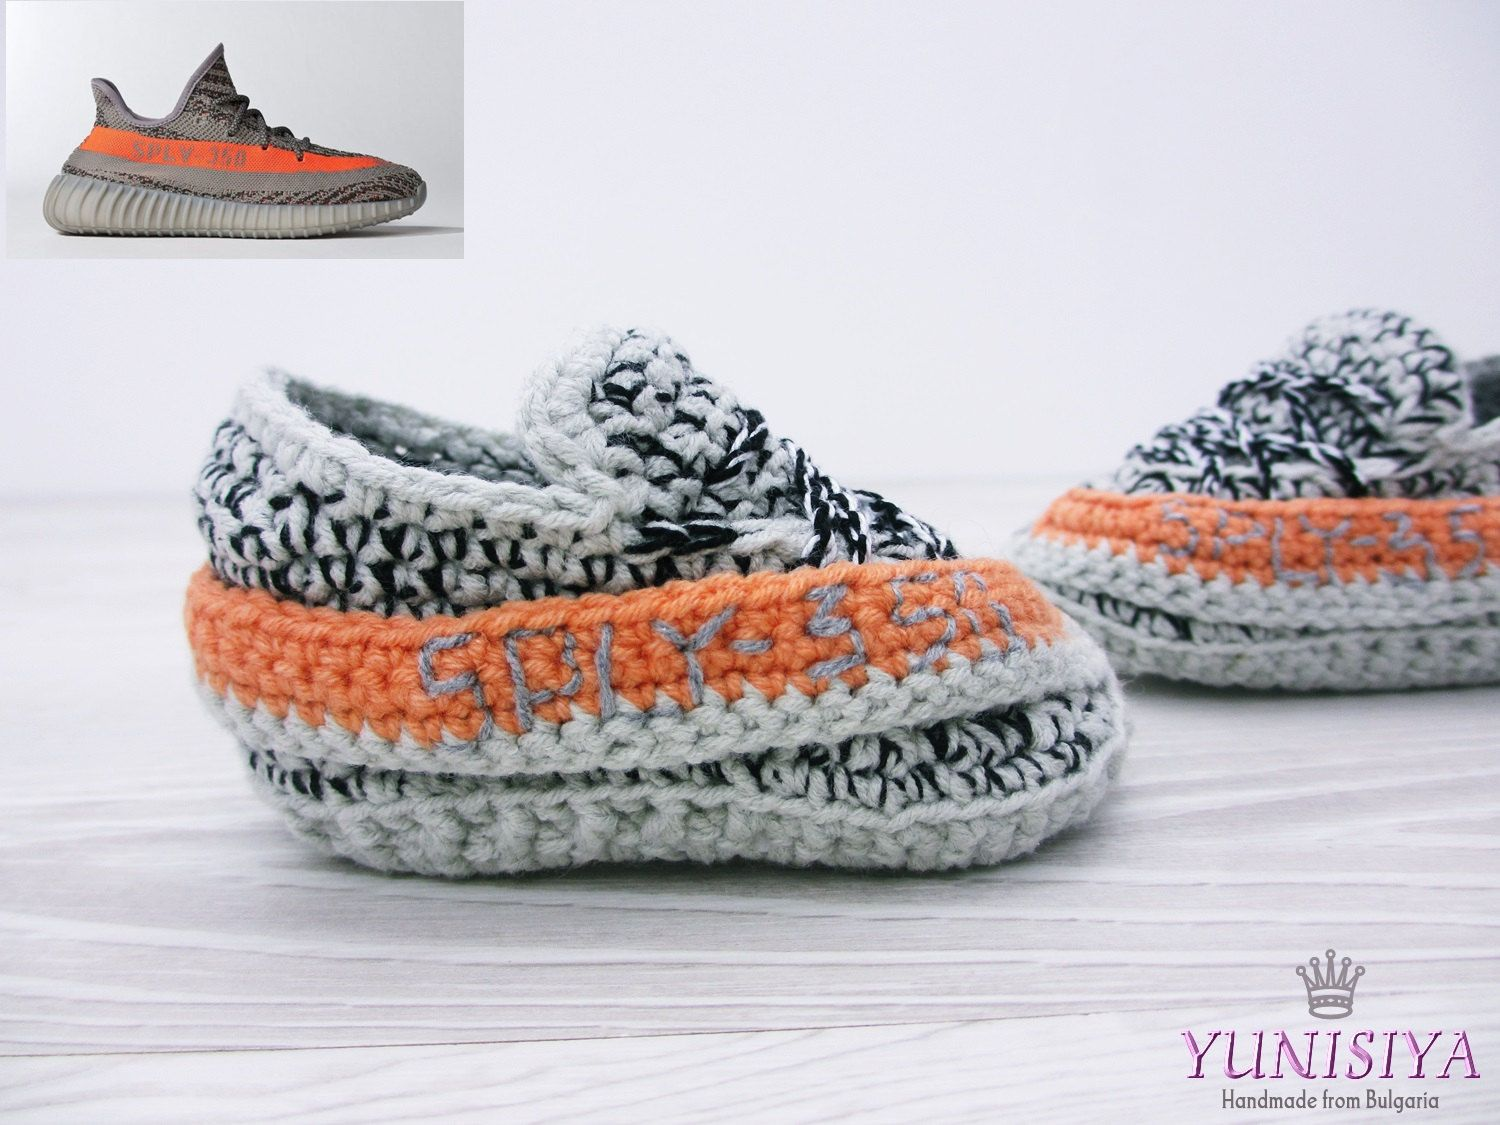 17bc9c56123 Men s slippers The Yeezy Boost 350 V2 Slippers Street Shoes Yeezy 750 Boost  Grey Slippers Shoes Crocheted slippers athletic shoes BB113 by Yunisiya on  Etsy